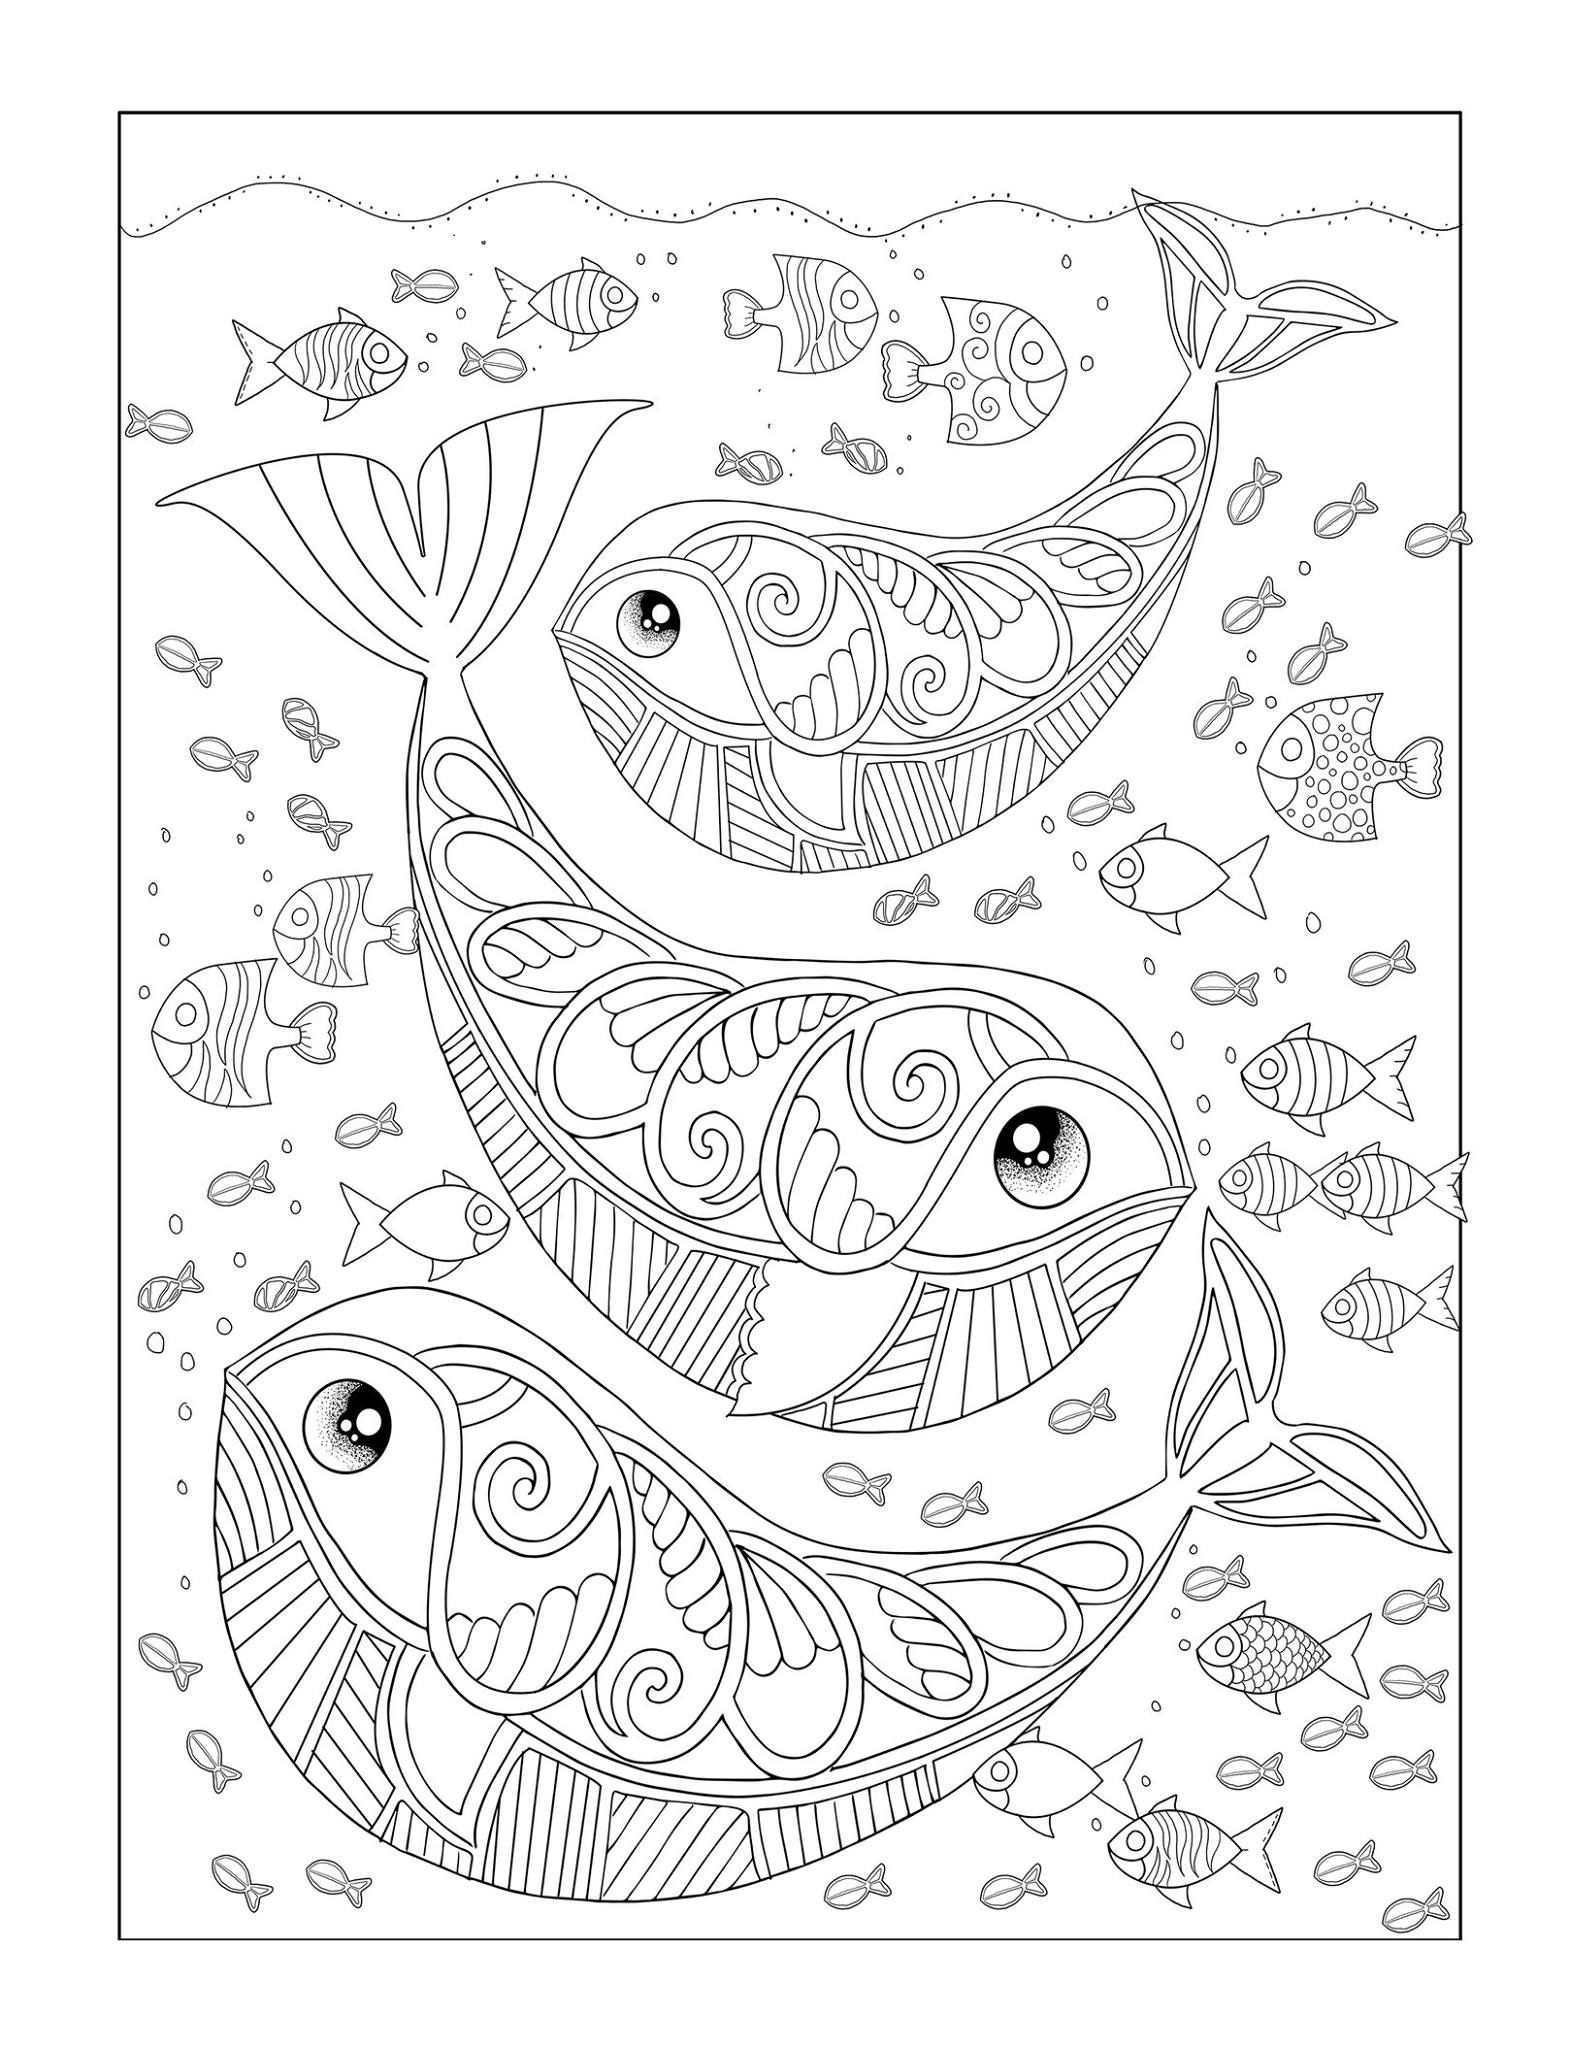 Pin By Marie D Parker On Coloring Books Owl Coloring Pages Coloring Pages Spring Coloring Pages